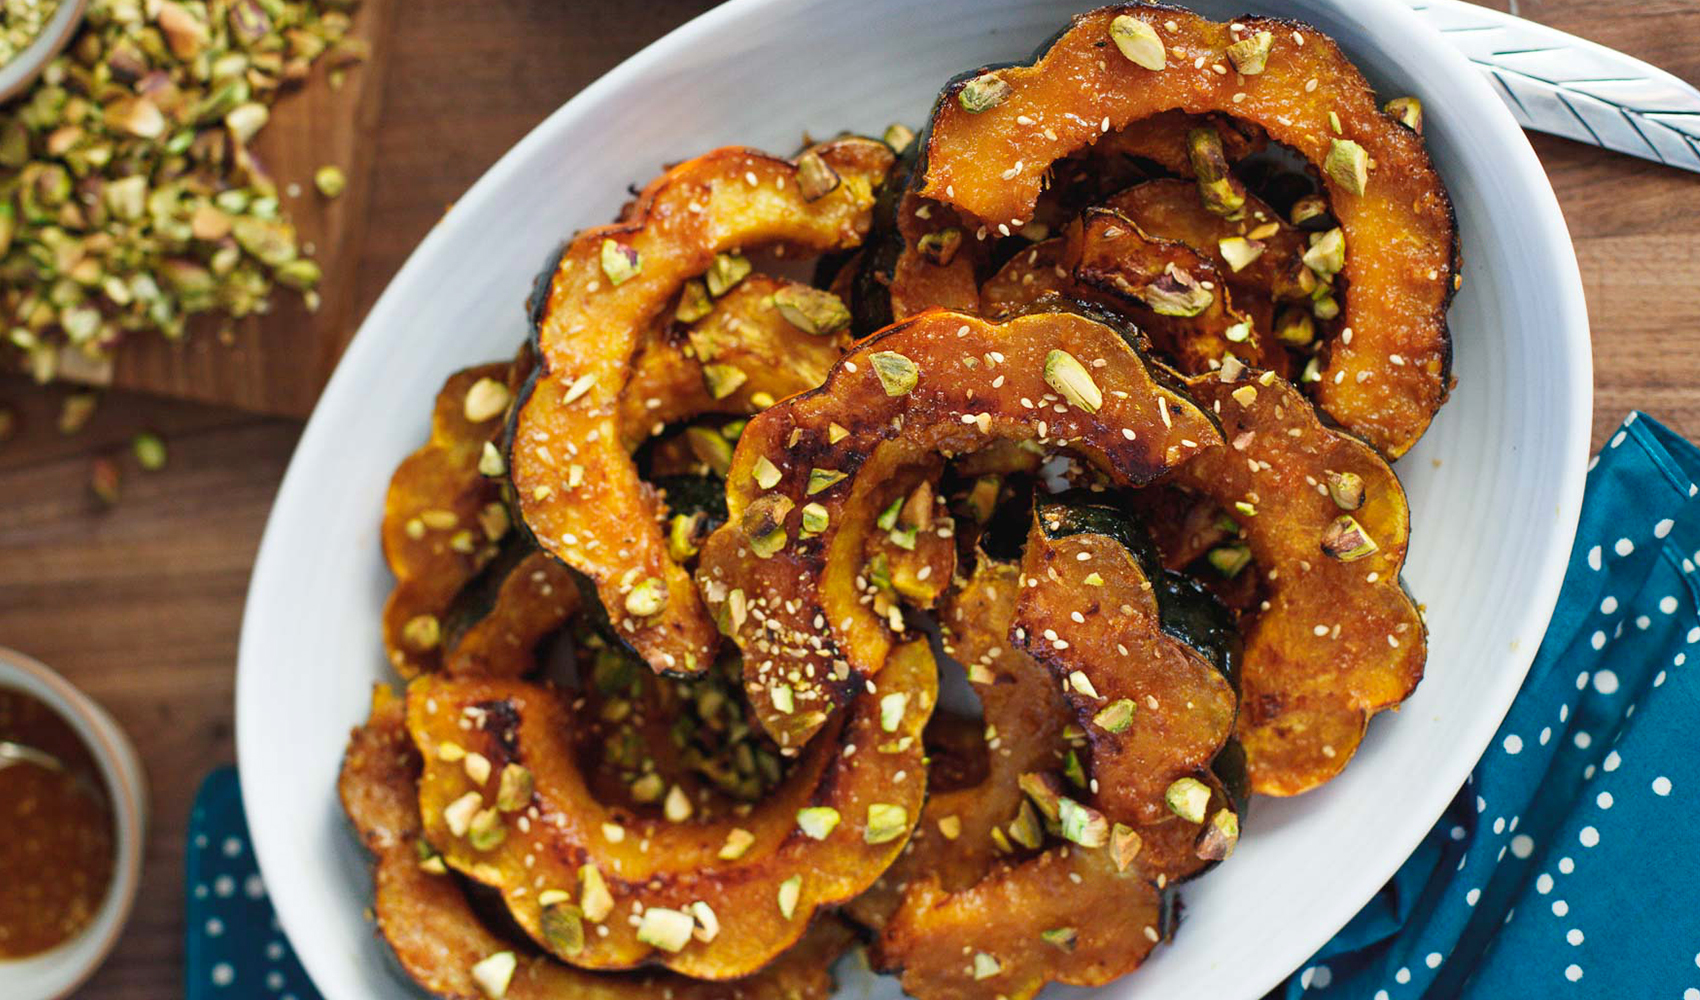 Ginger Miso Acorn Squash with Toasted Pistachios